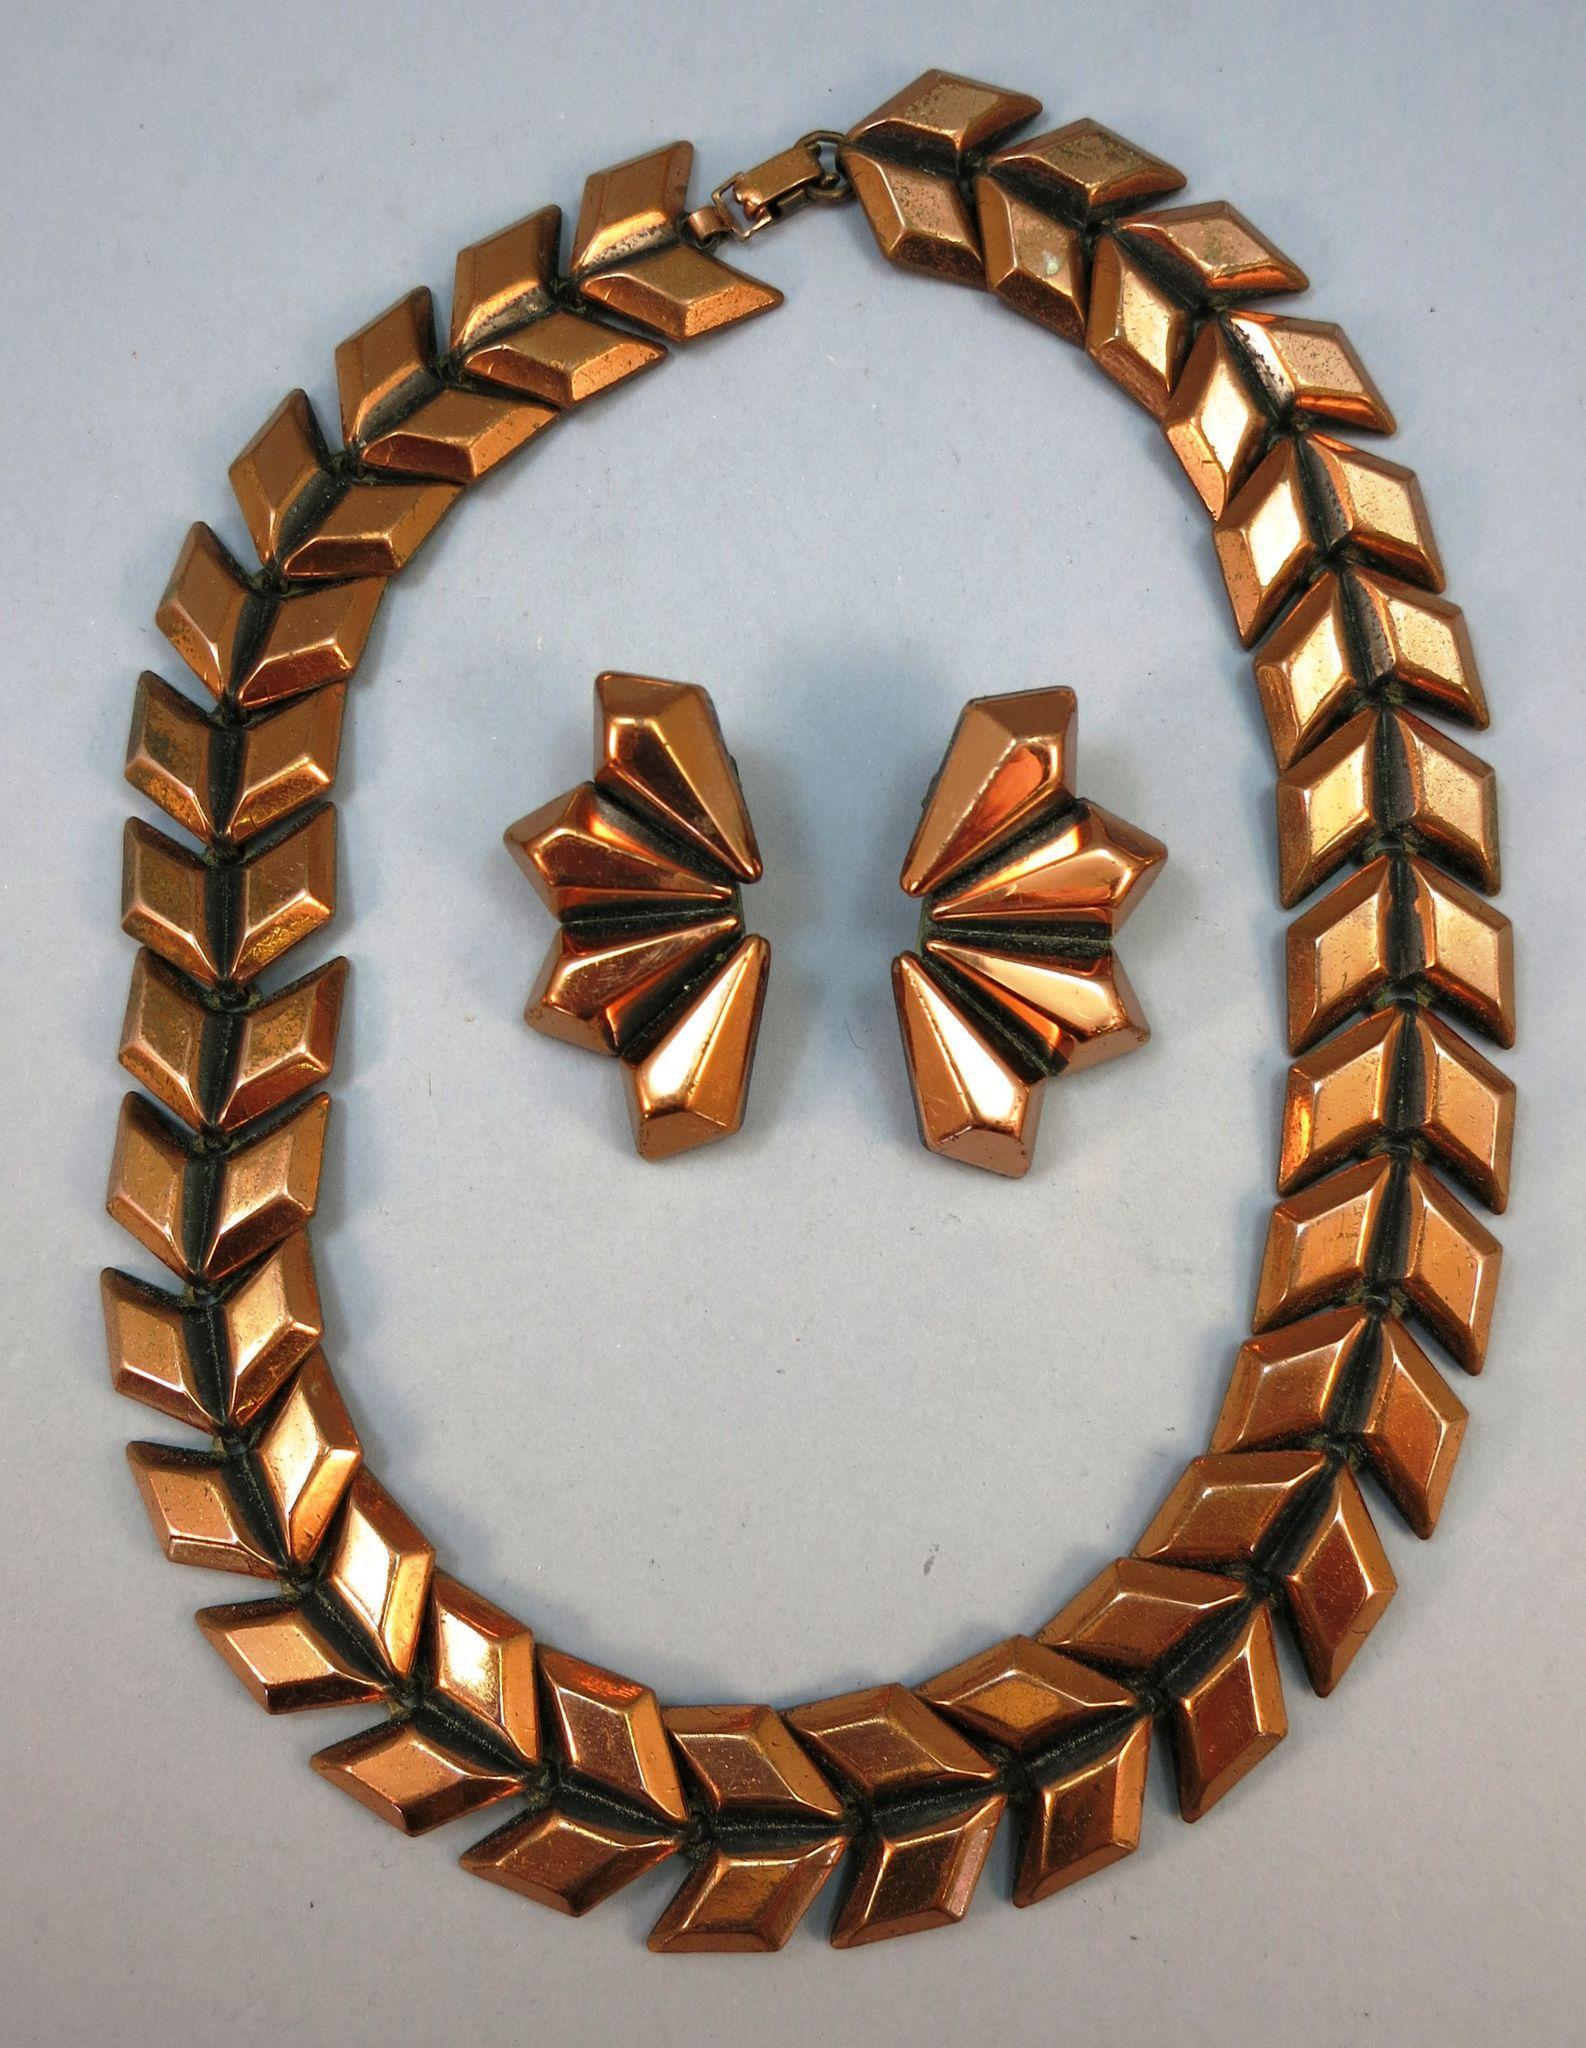 VINTAGE Copper Necklace and Earrings Made by Rame'